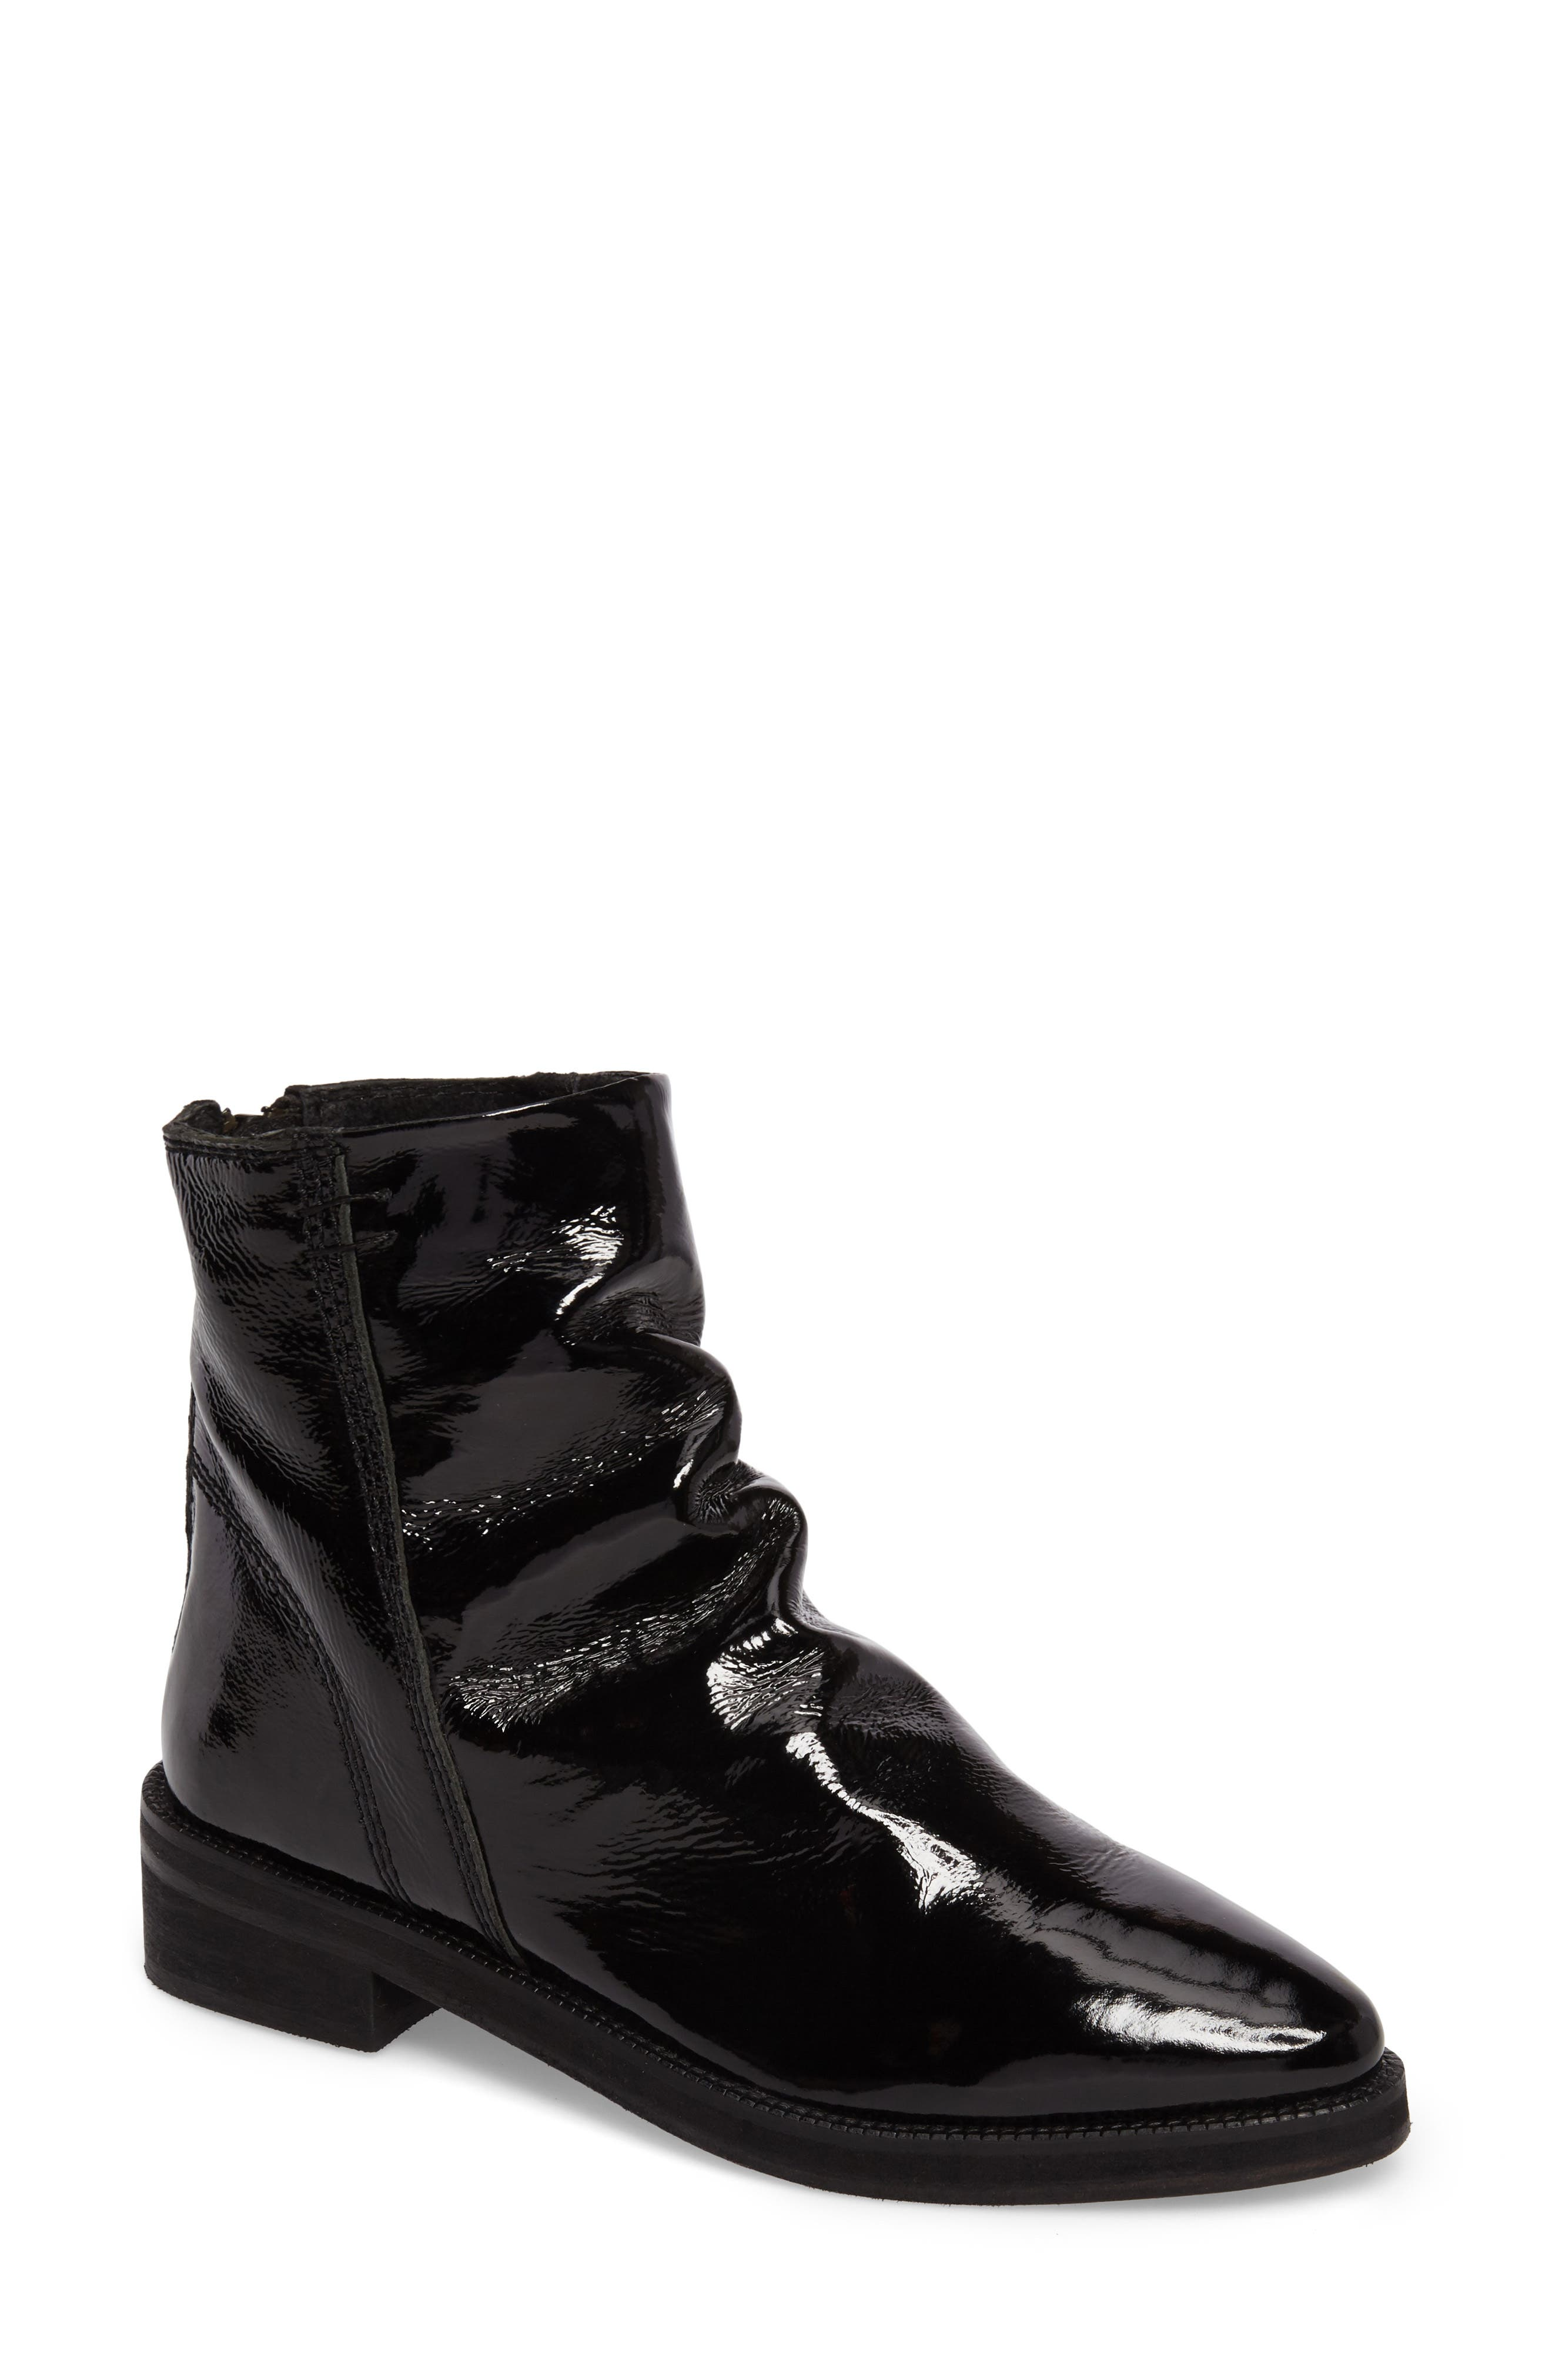 Alternate Image 1 Selected - Free People Amarone Slightly Slouchy Bootie (Women)